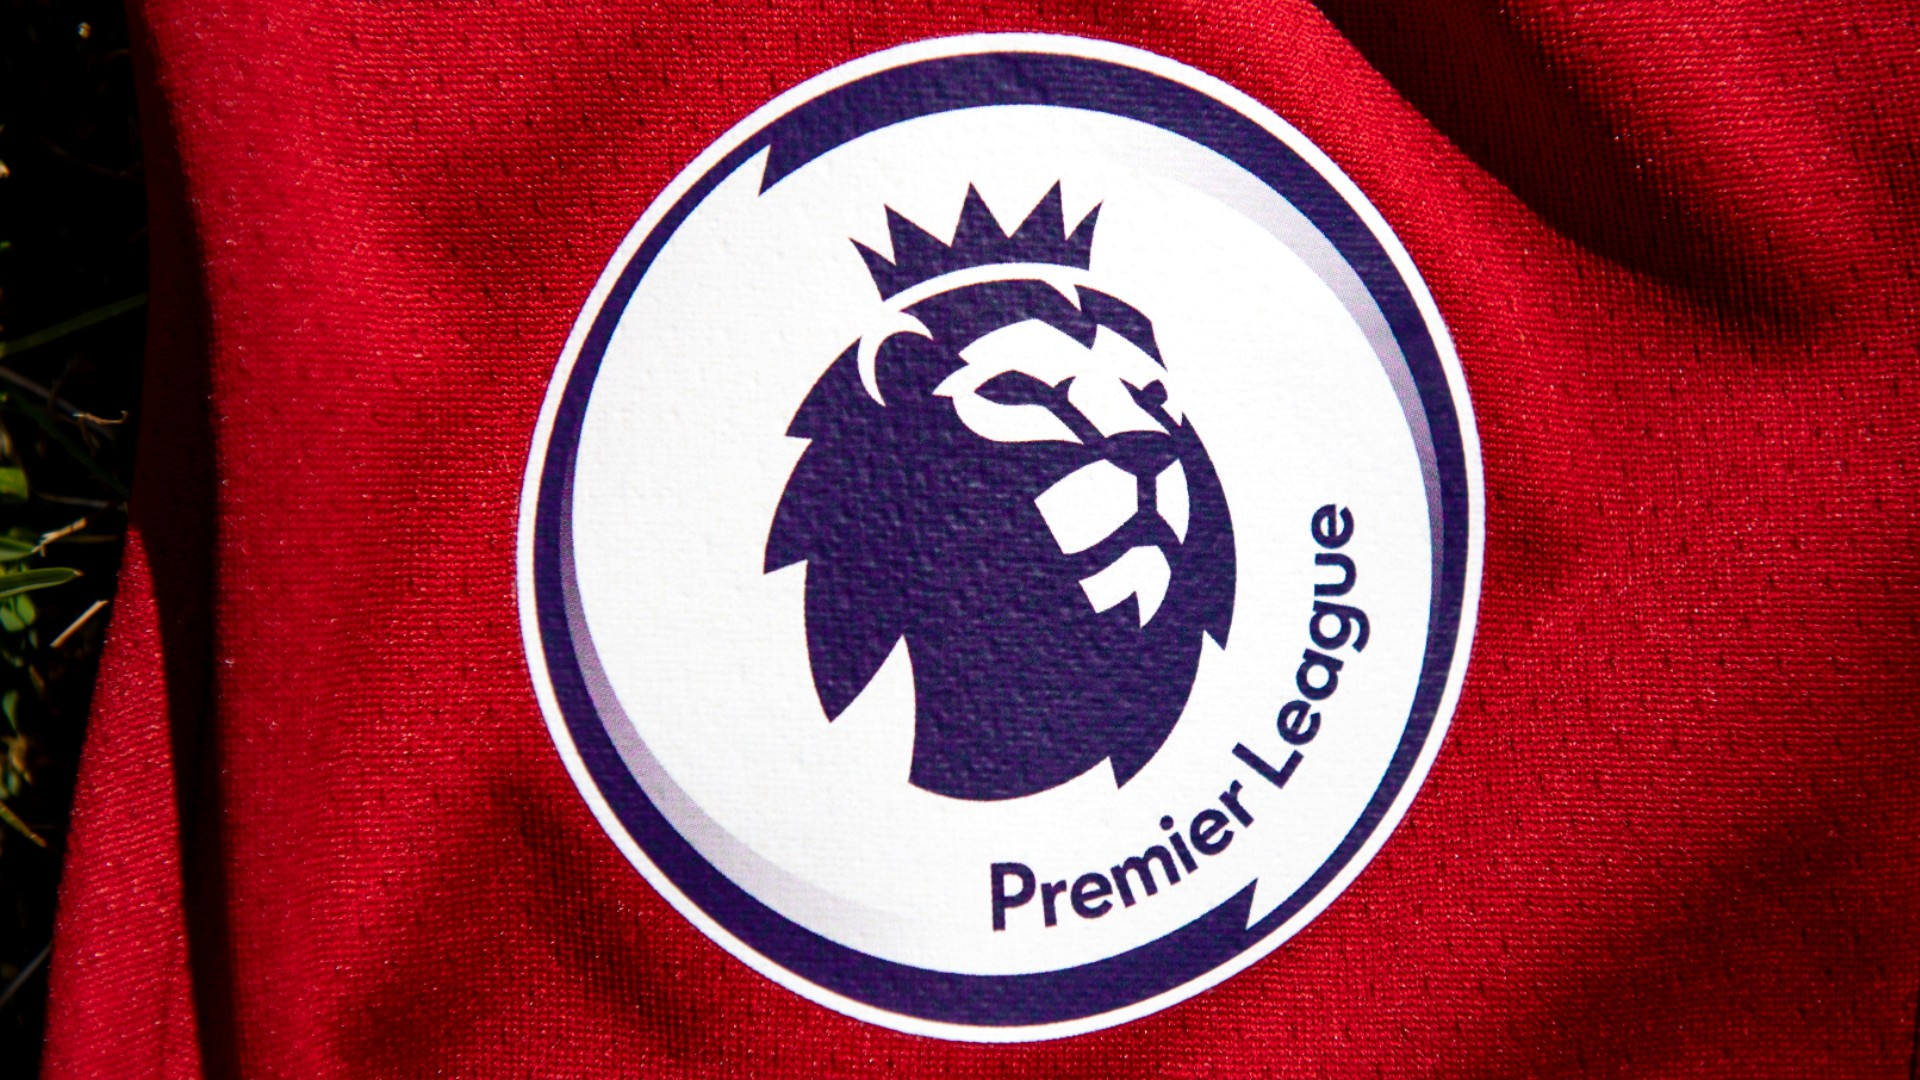 English Premier League odds, lines, overs & unders: Updated betting info and picks...